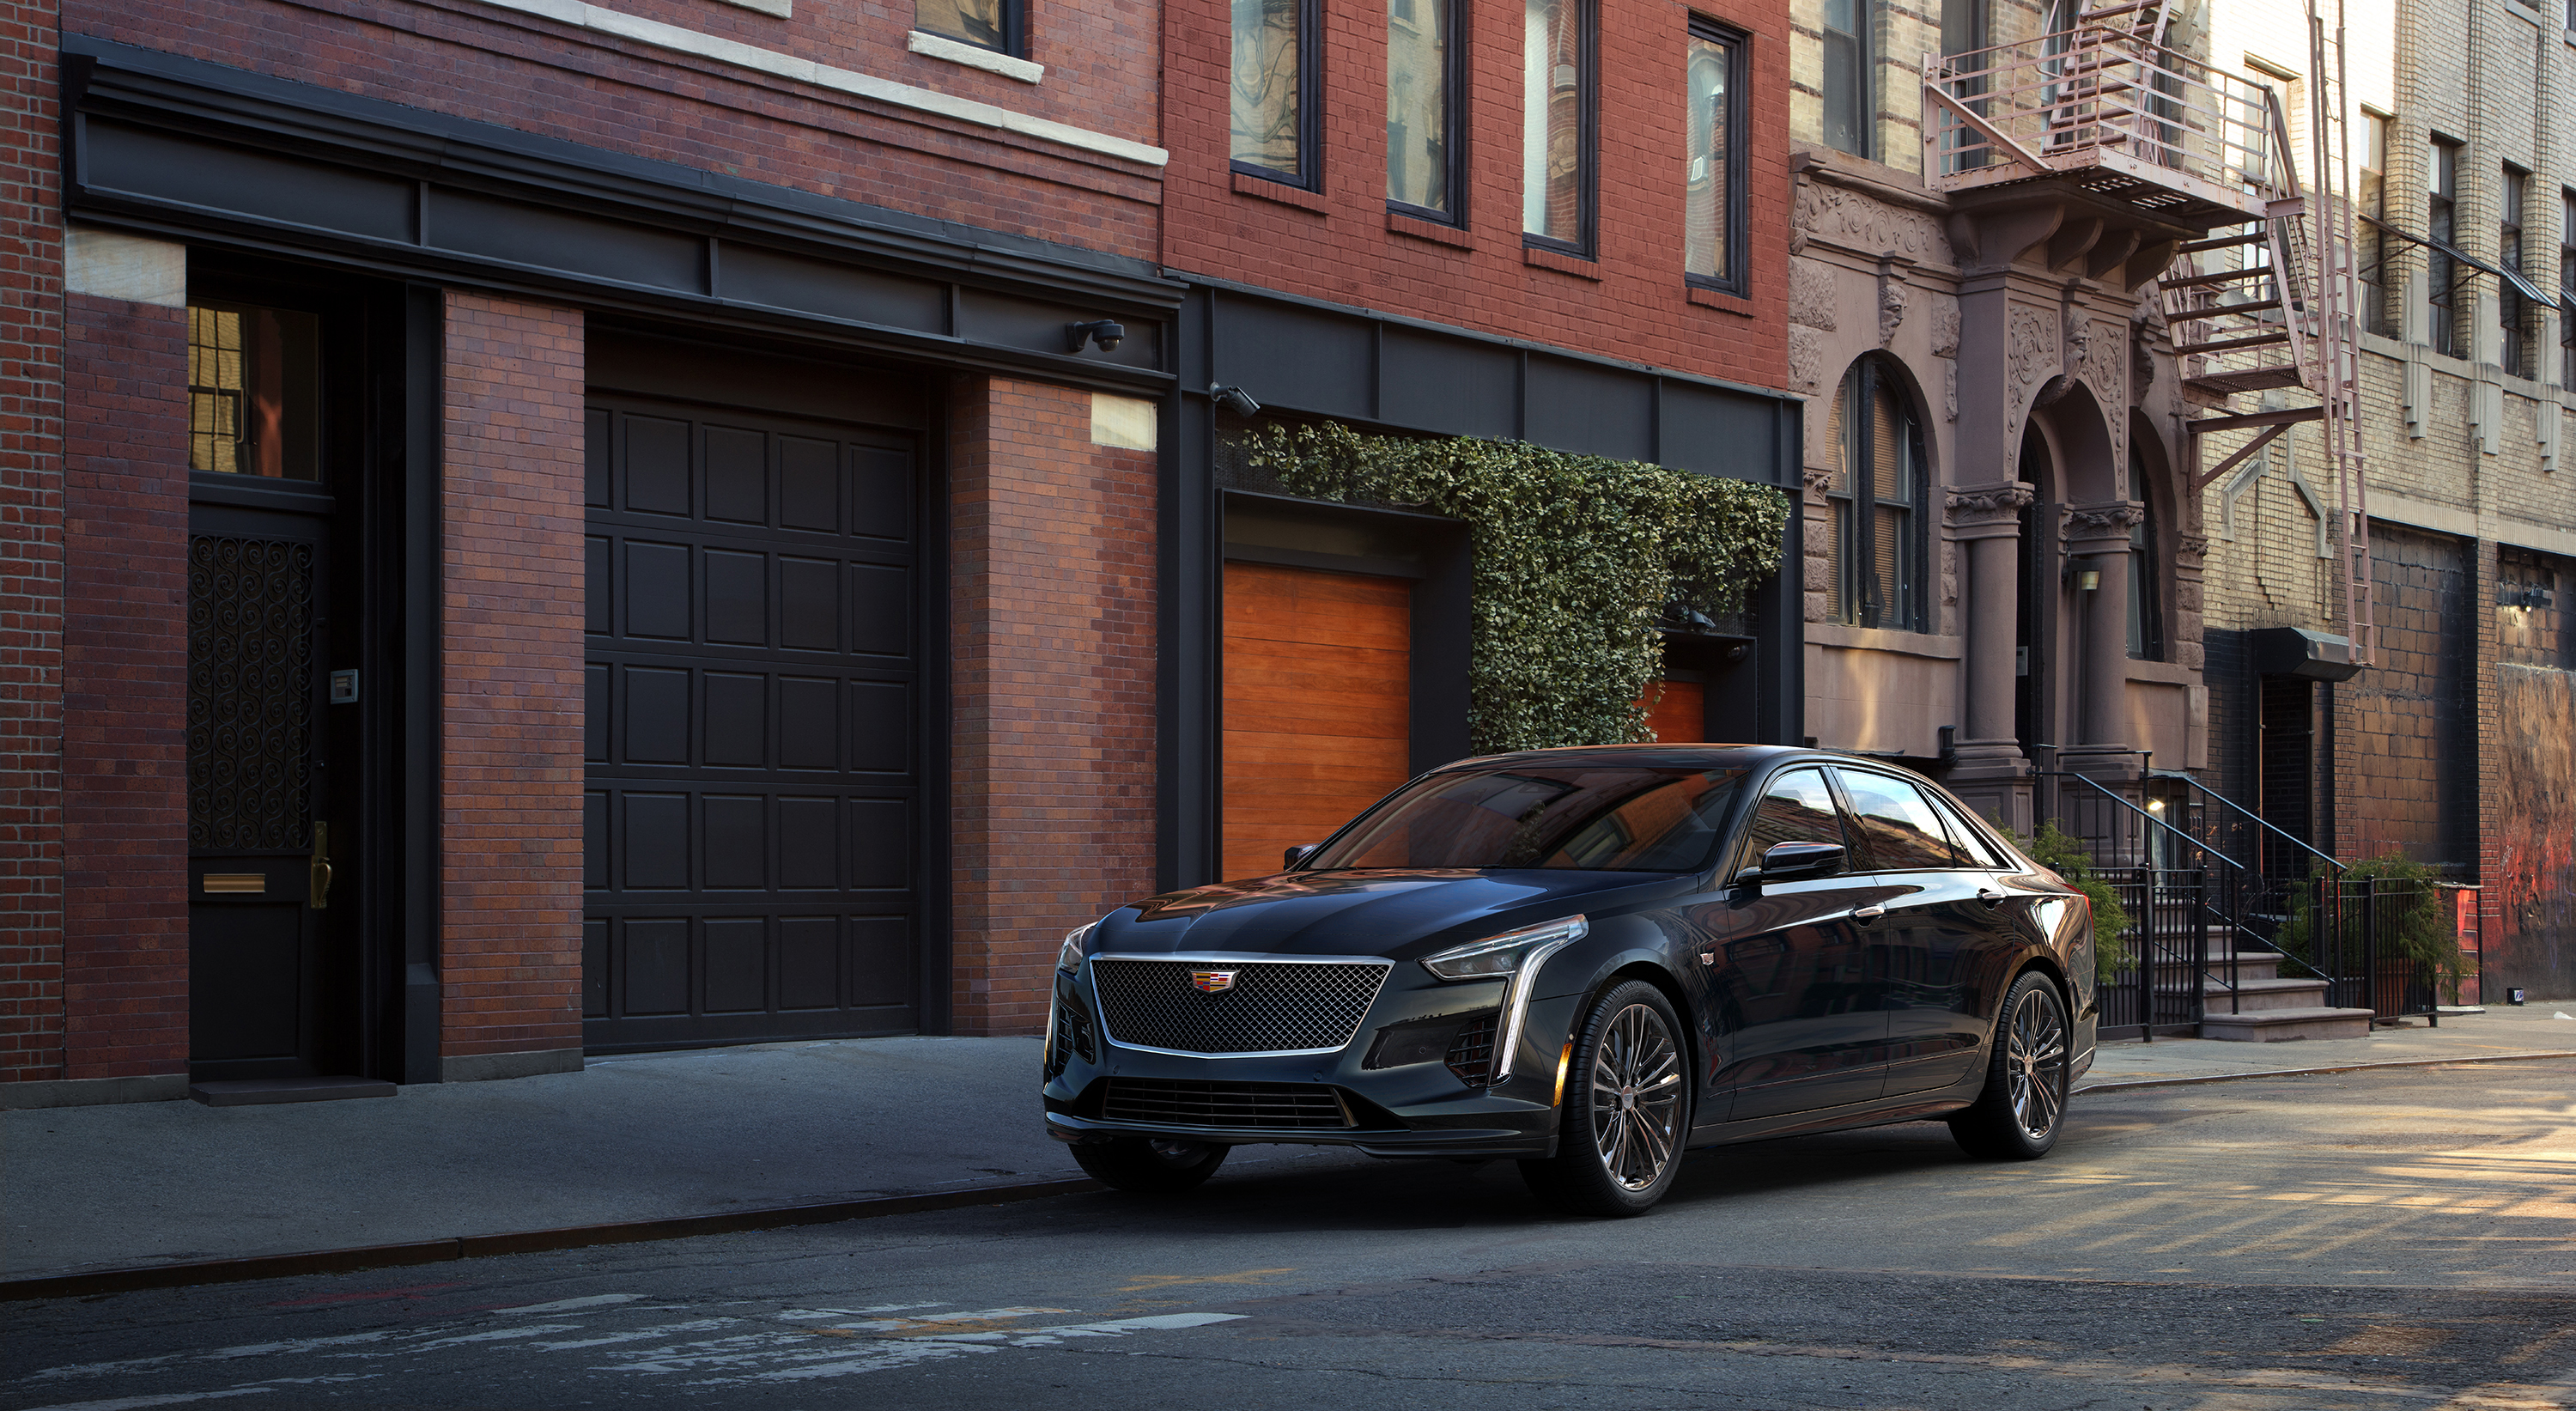 2019 Cadillac CT6 V-Sport front 3/4